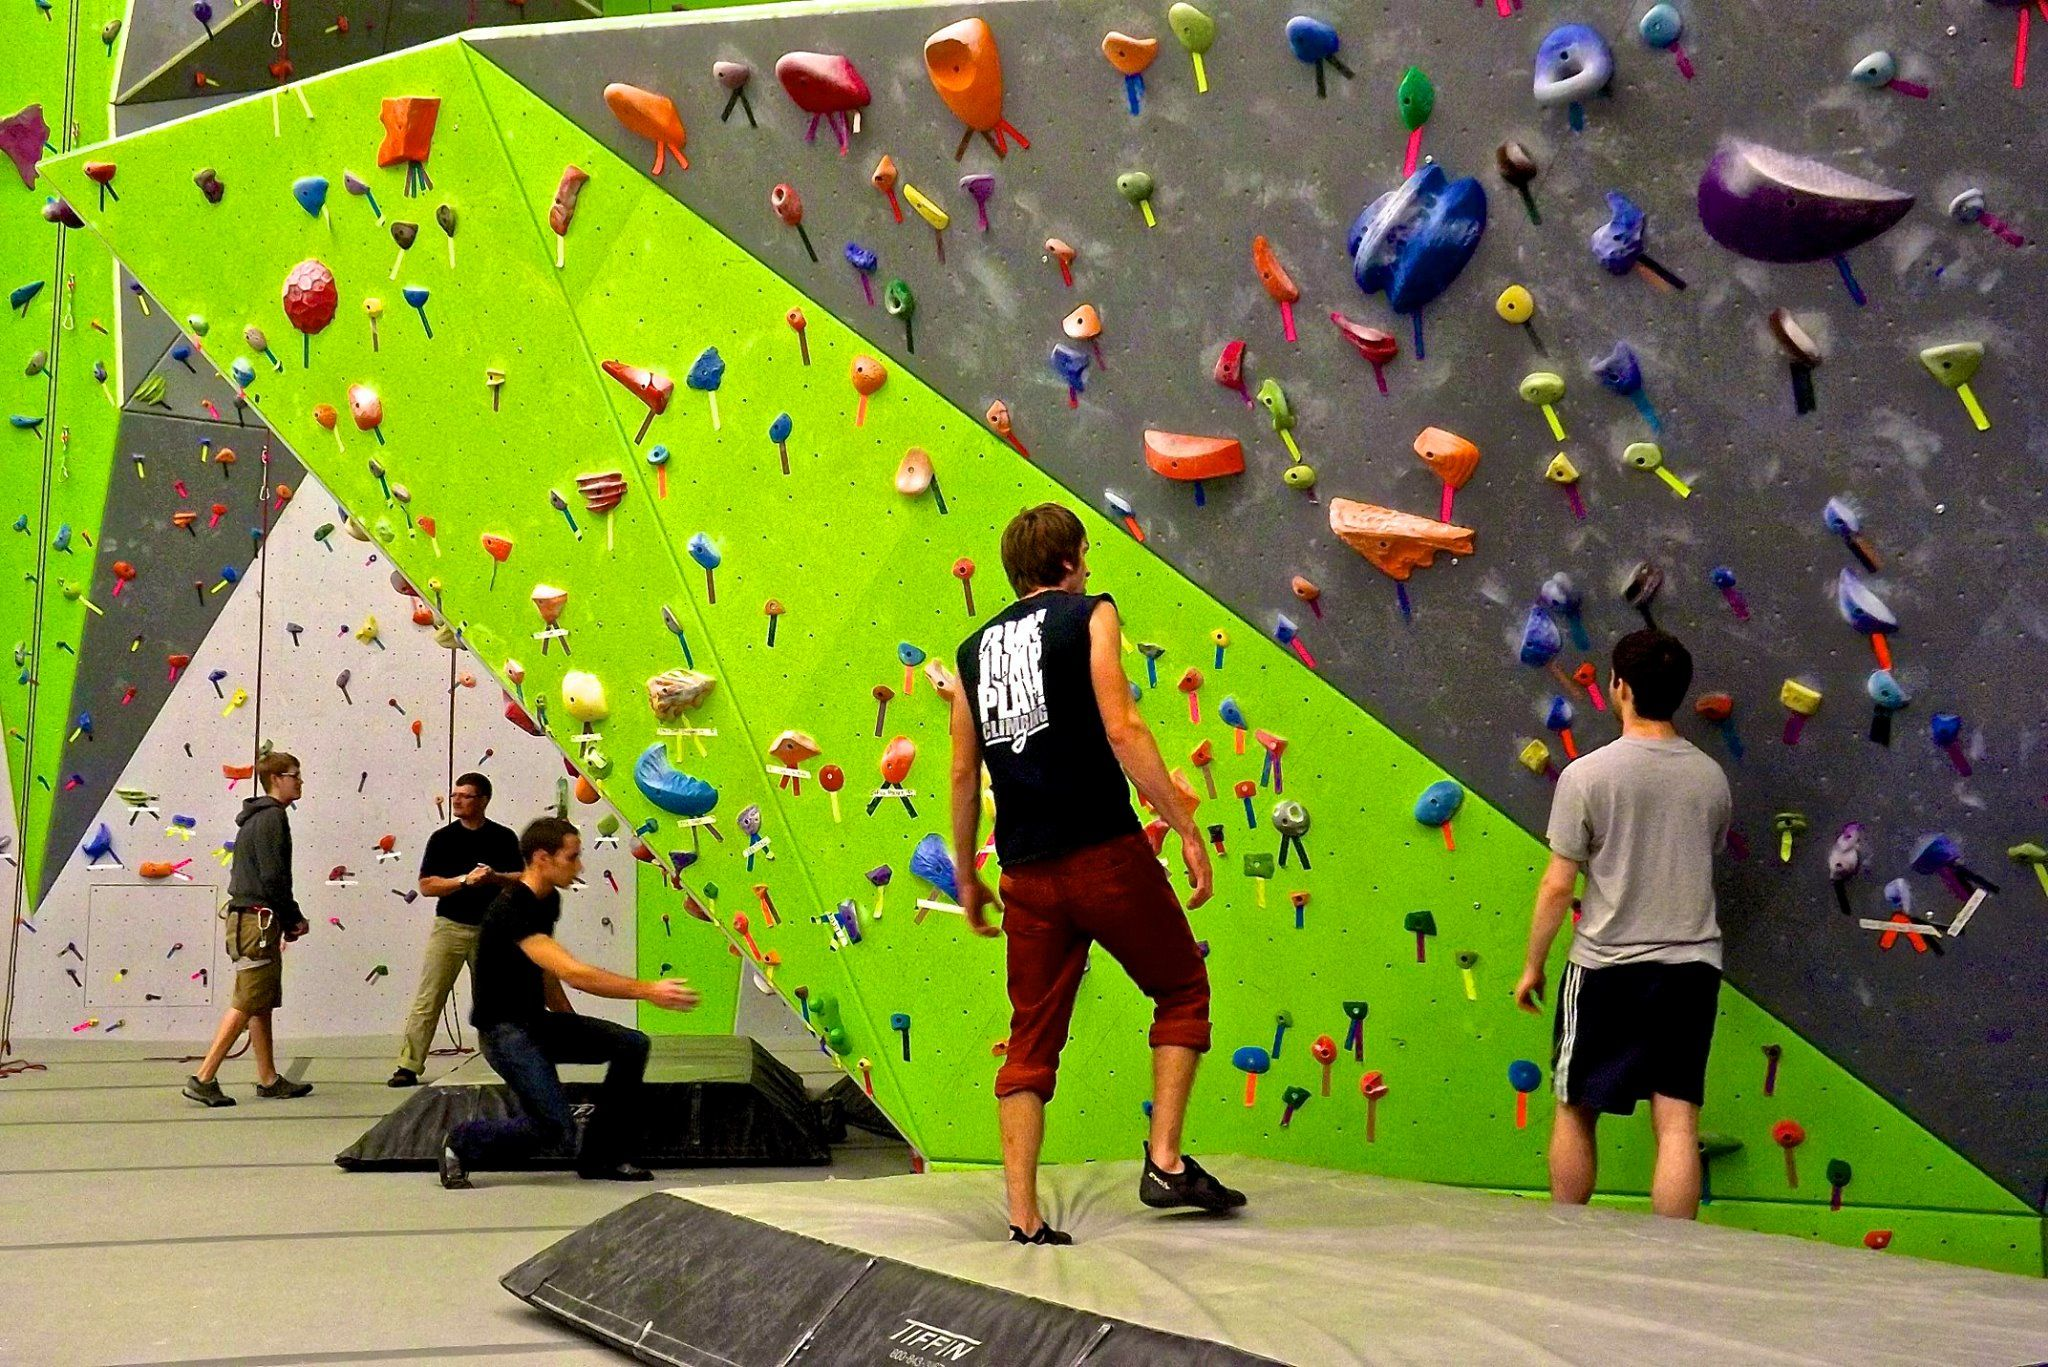 Spooky Nook climbing and arcade - Lancaster, PA | Travel | Pinterest